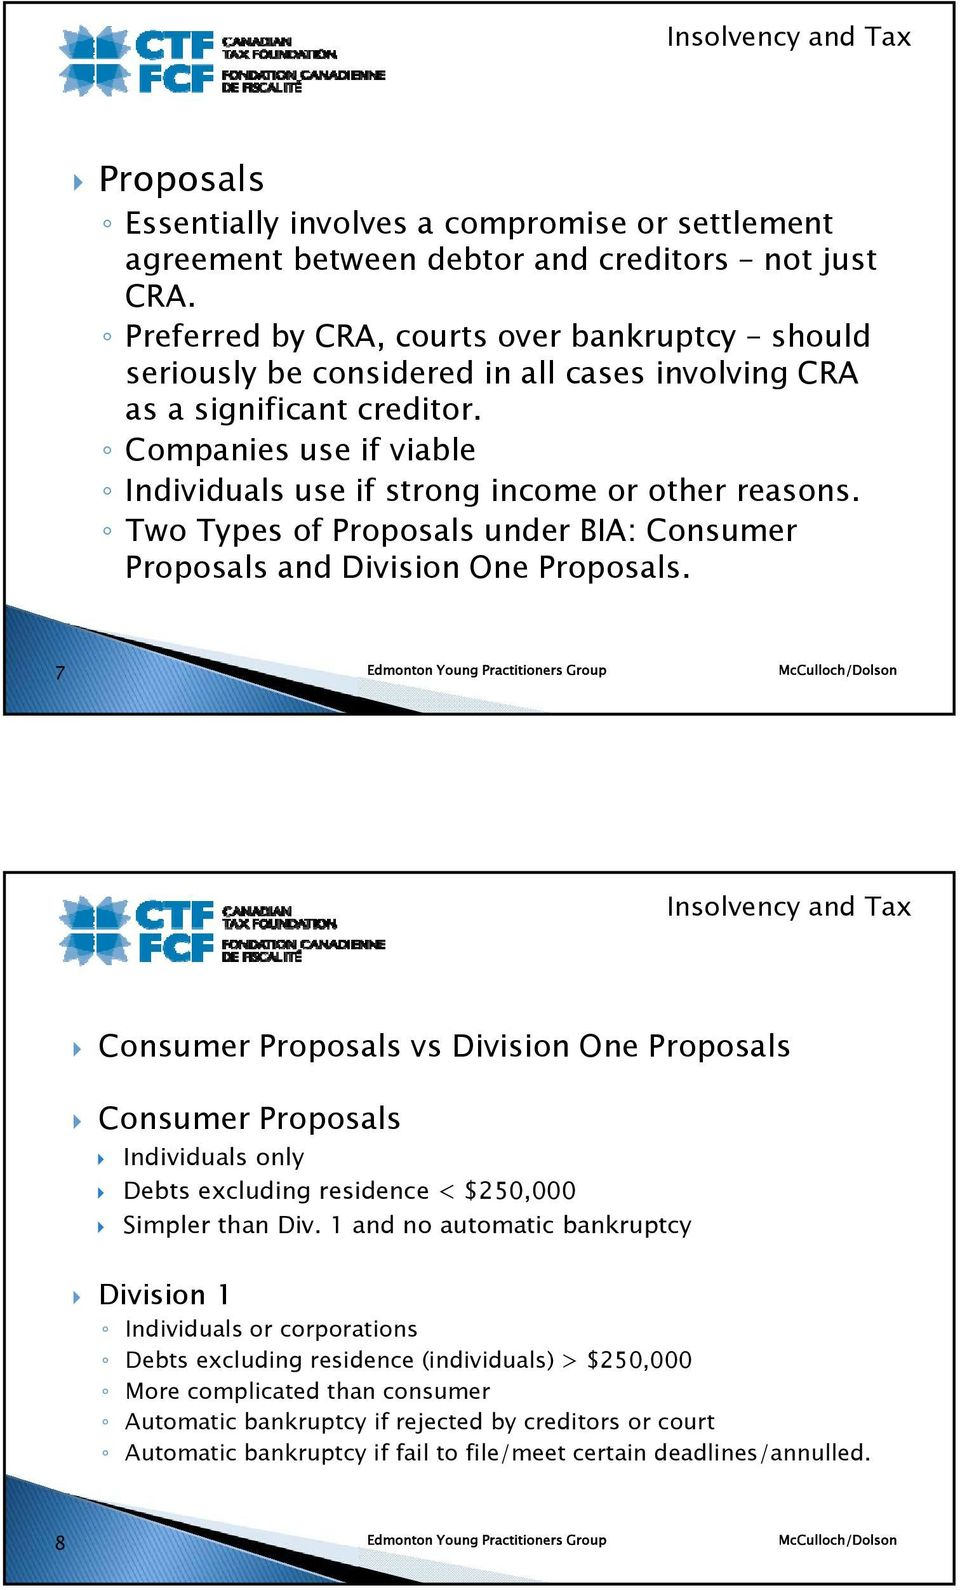 Two Types of Proposals under BIA: Consumer Proposals and Division One Proposals.